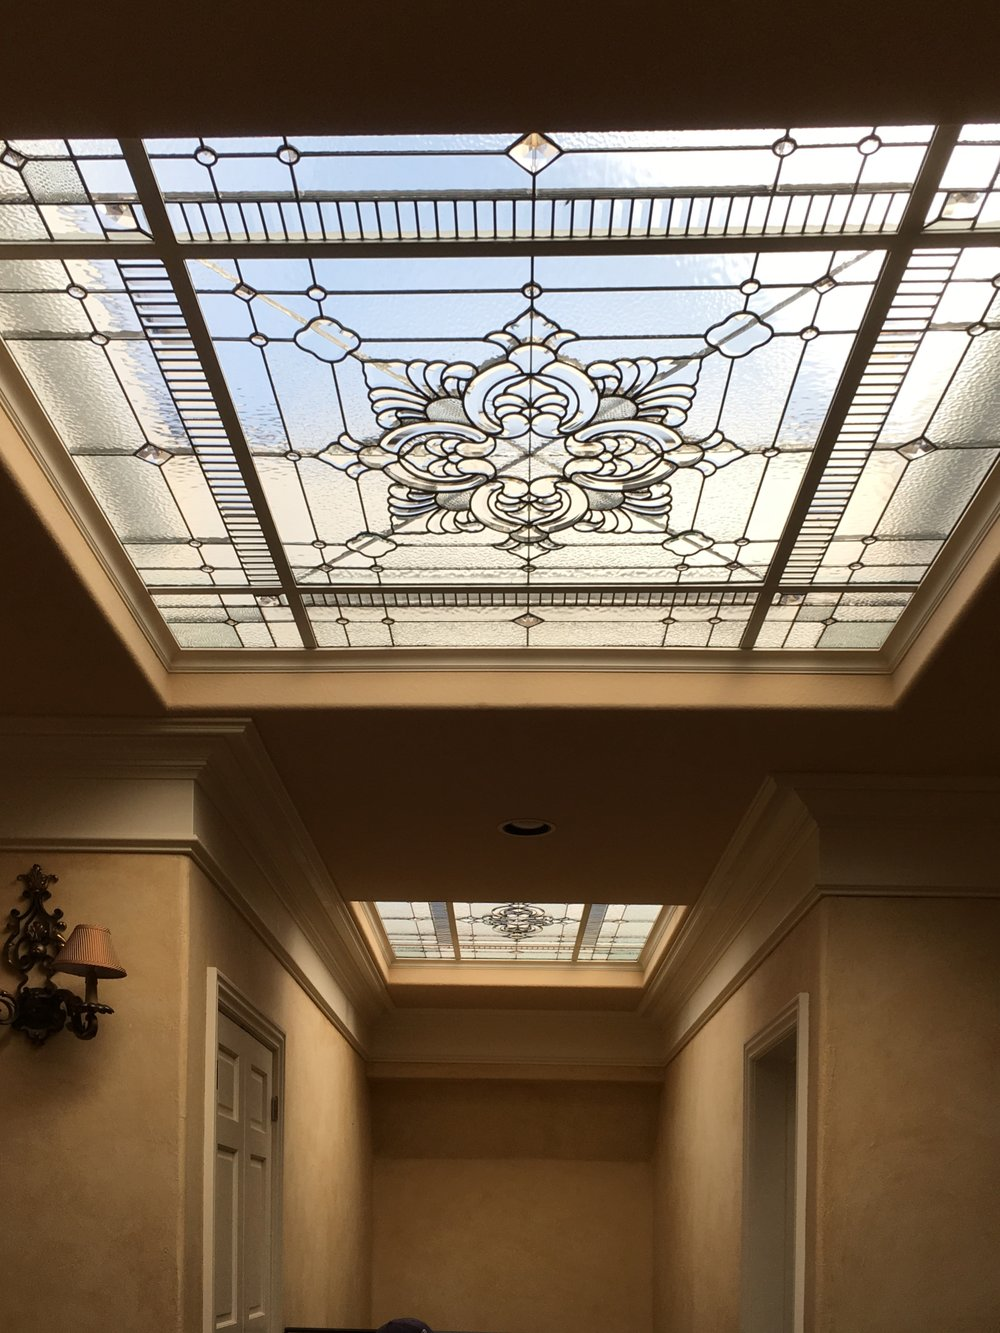 leaded glass stained glass custom design california legacy glass studios skylight elegant design beveled glass metal frame modern victorian home.JPG